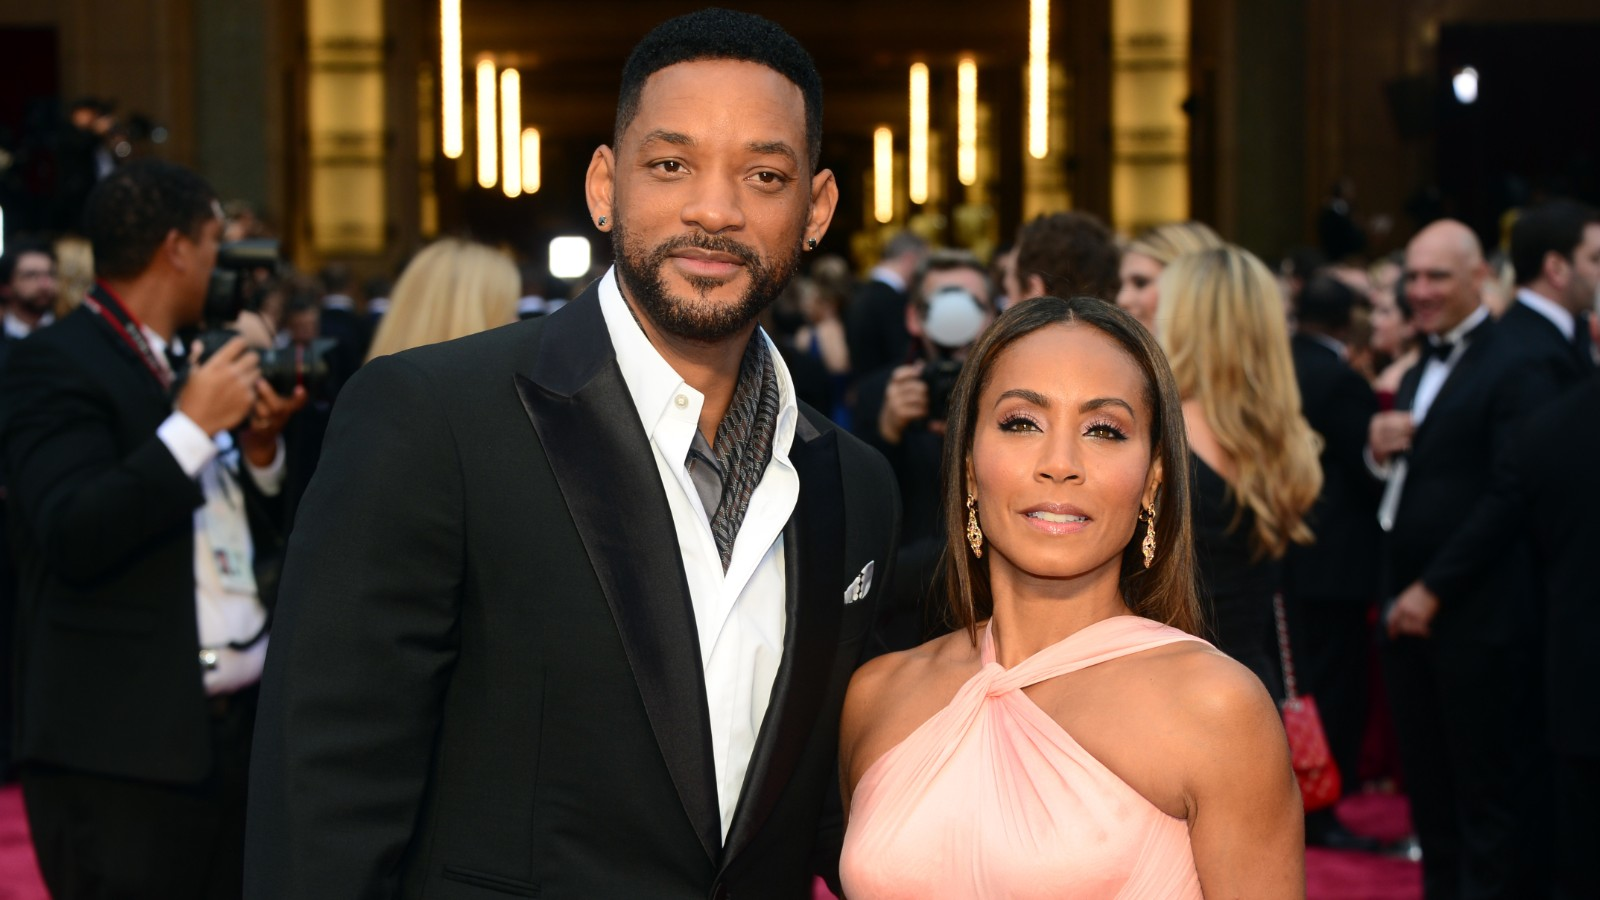 """Yes It Happened""Jada Pinkett Smith Says Of Her Romance With August Alsina"